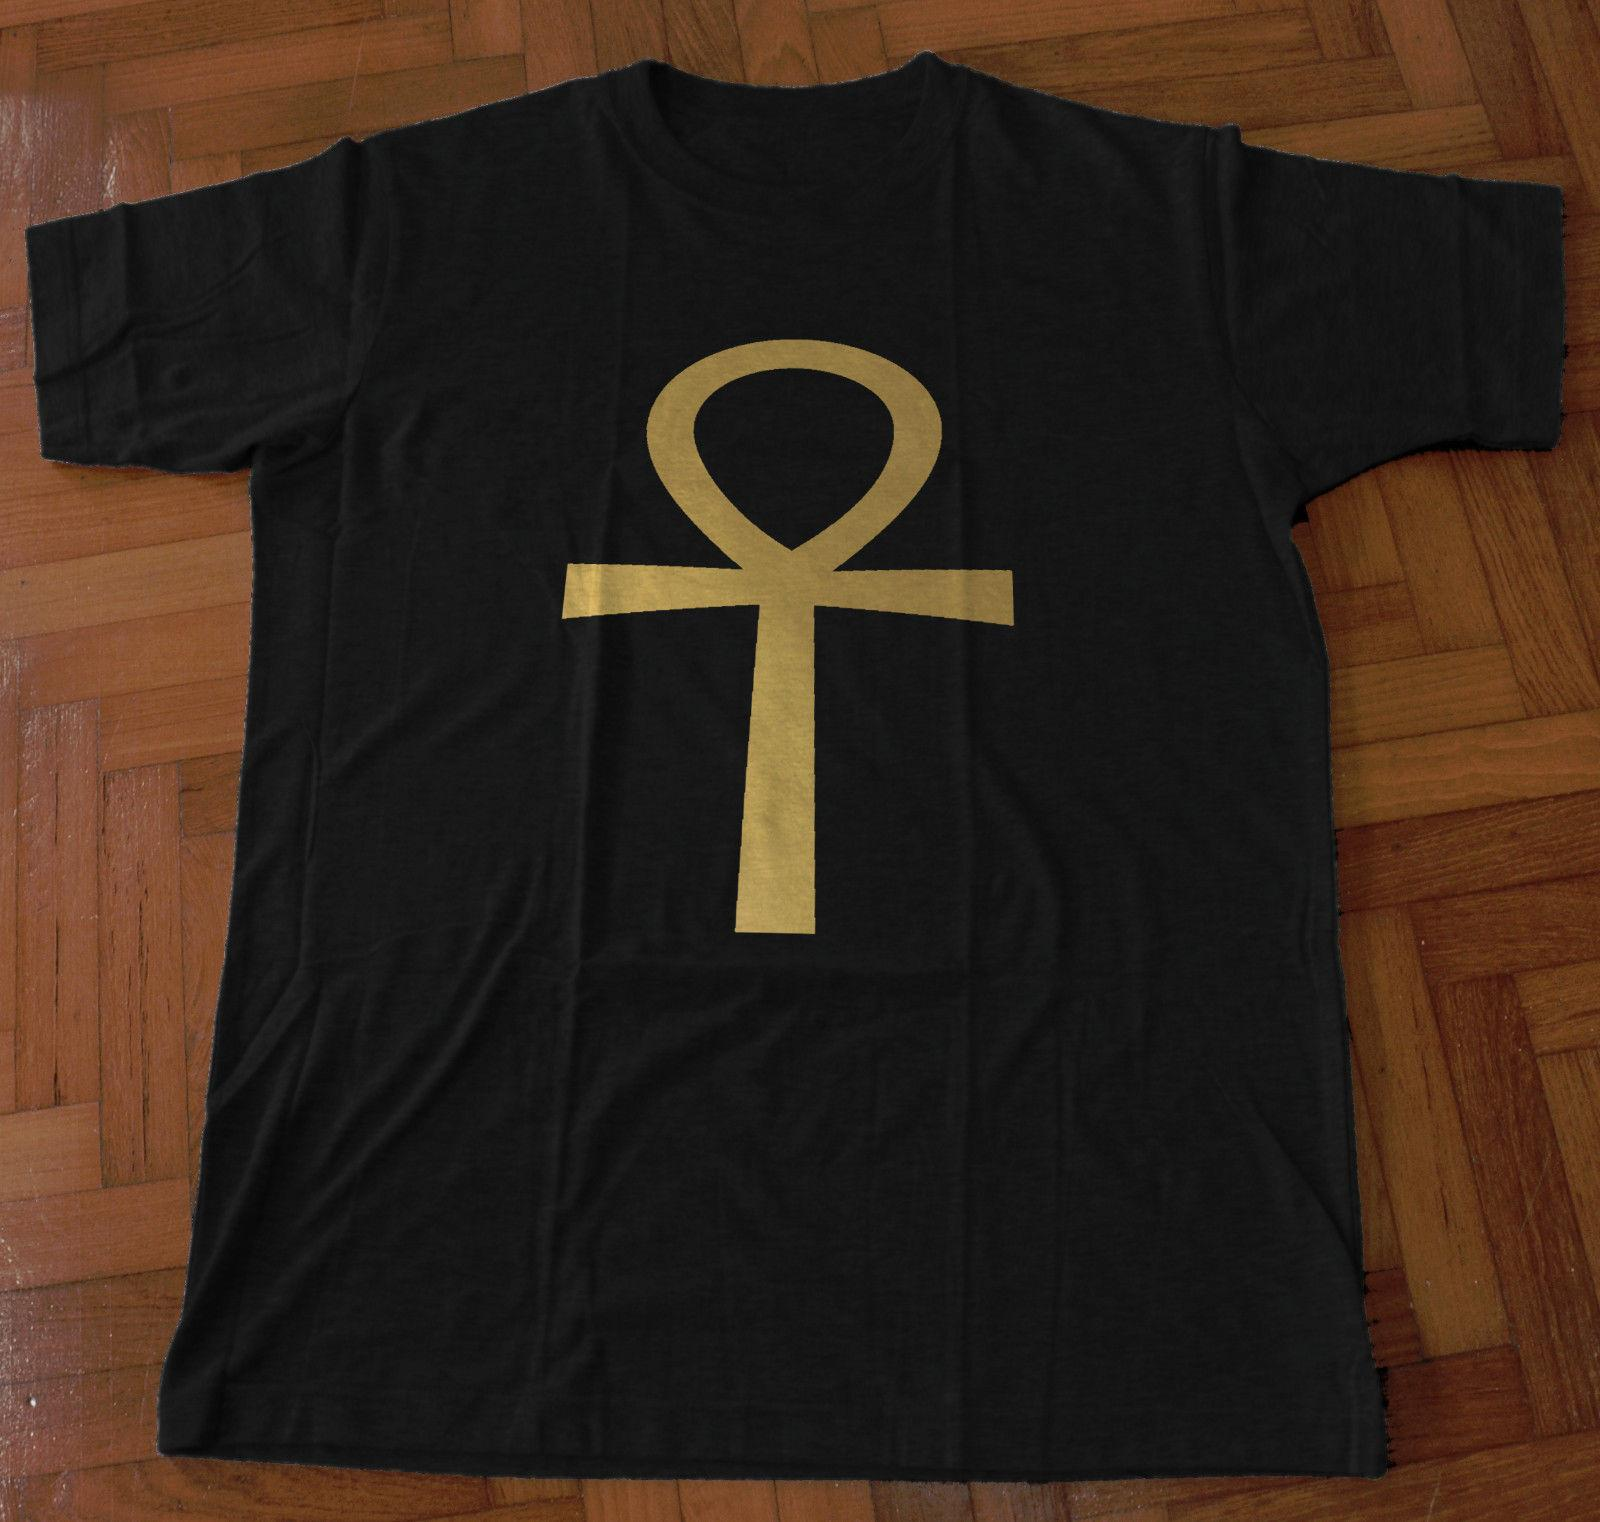 f4cb1be3288 ANKH GOLD FOIL DESIGN RINGSPUN COTTON T SHIRT EGYPTIAN LIFE CROSS  HIEROGLYPH Funny Unisex Casual T Shirt Online Buy Cool Tees Online From  Rocktothetop, ...